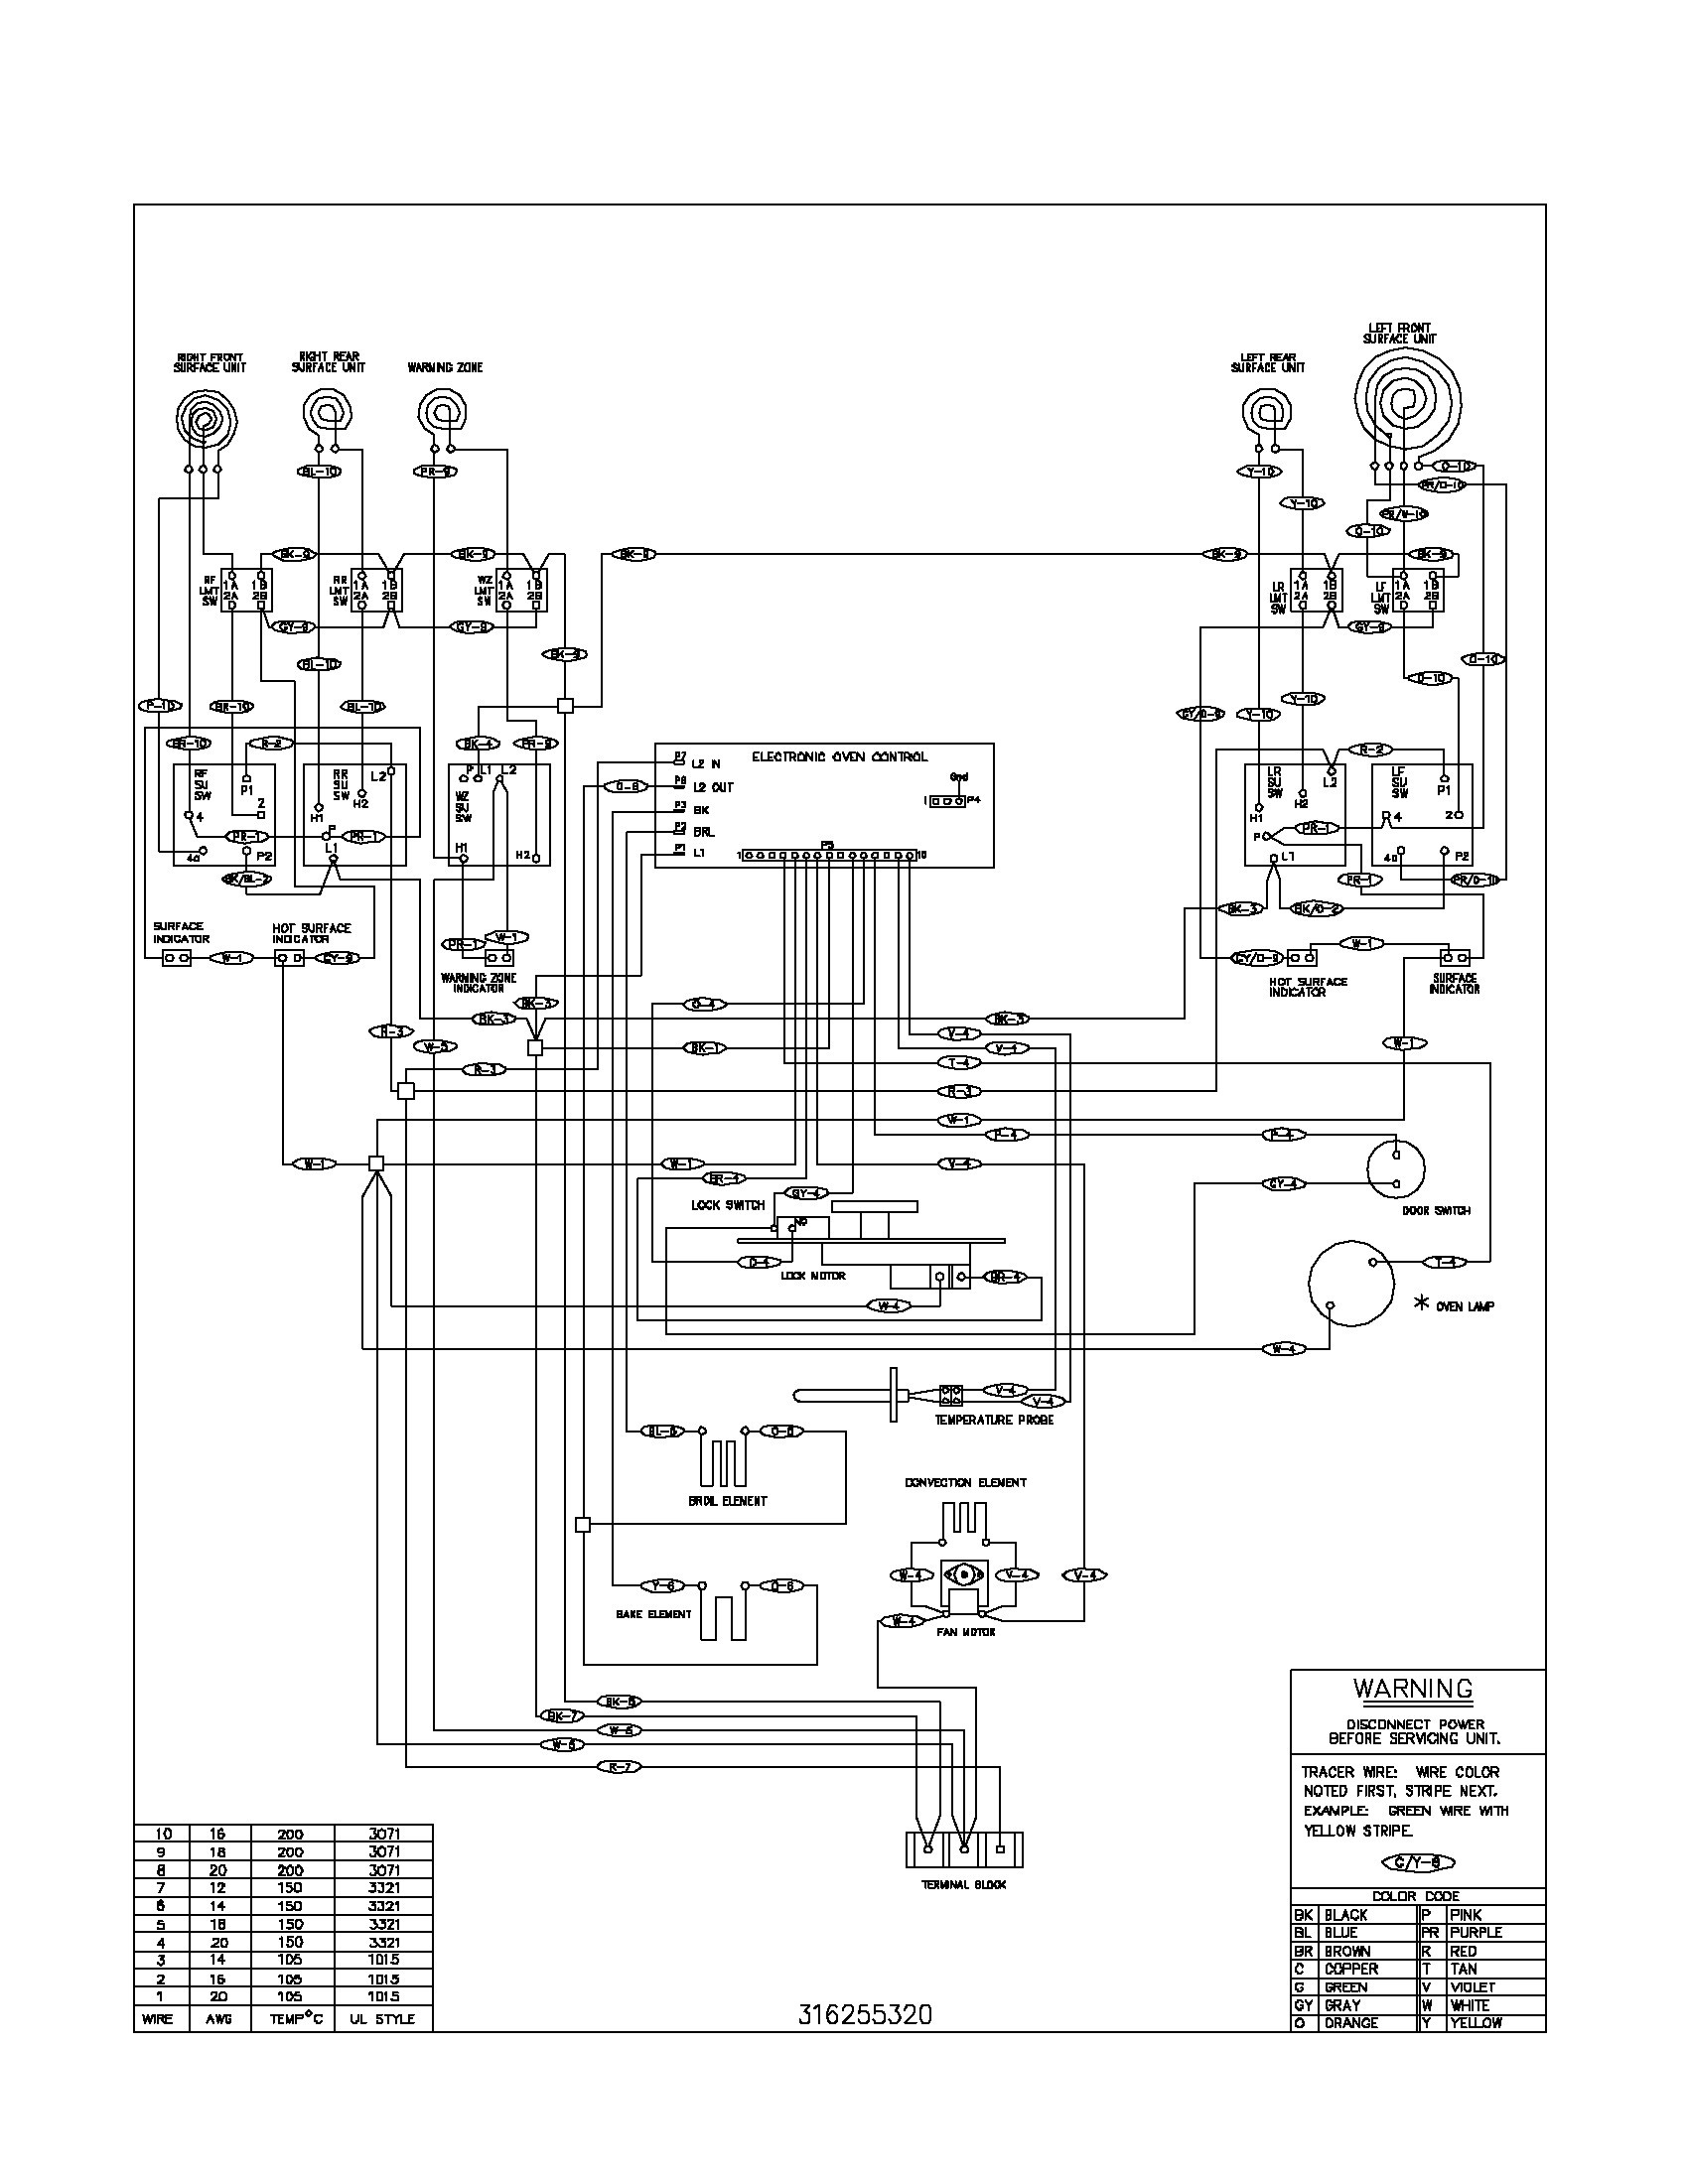 Whirlpool Ga Dryer Wiring Diagram